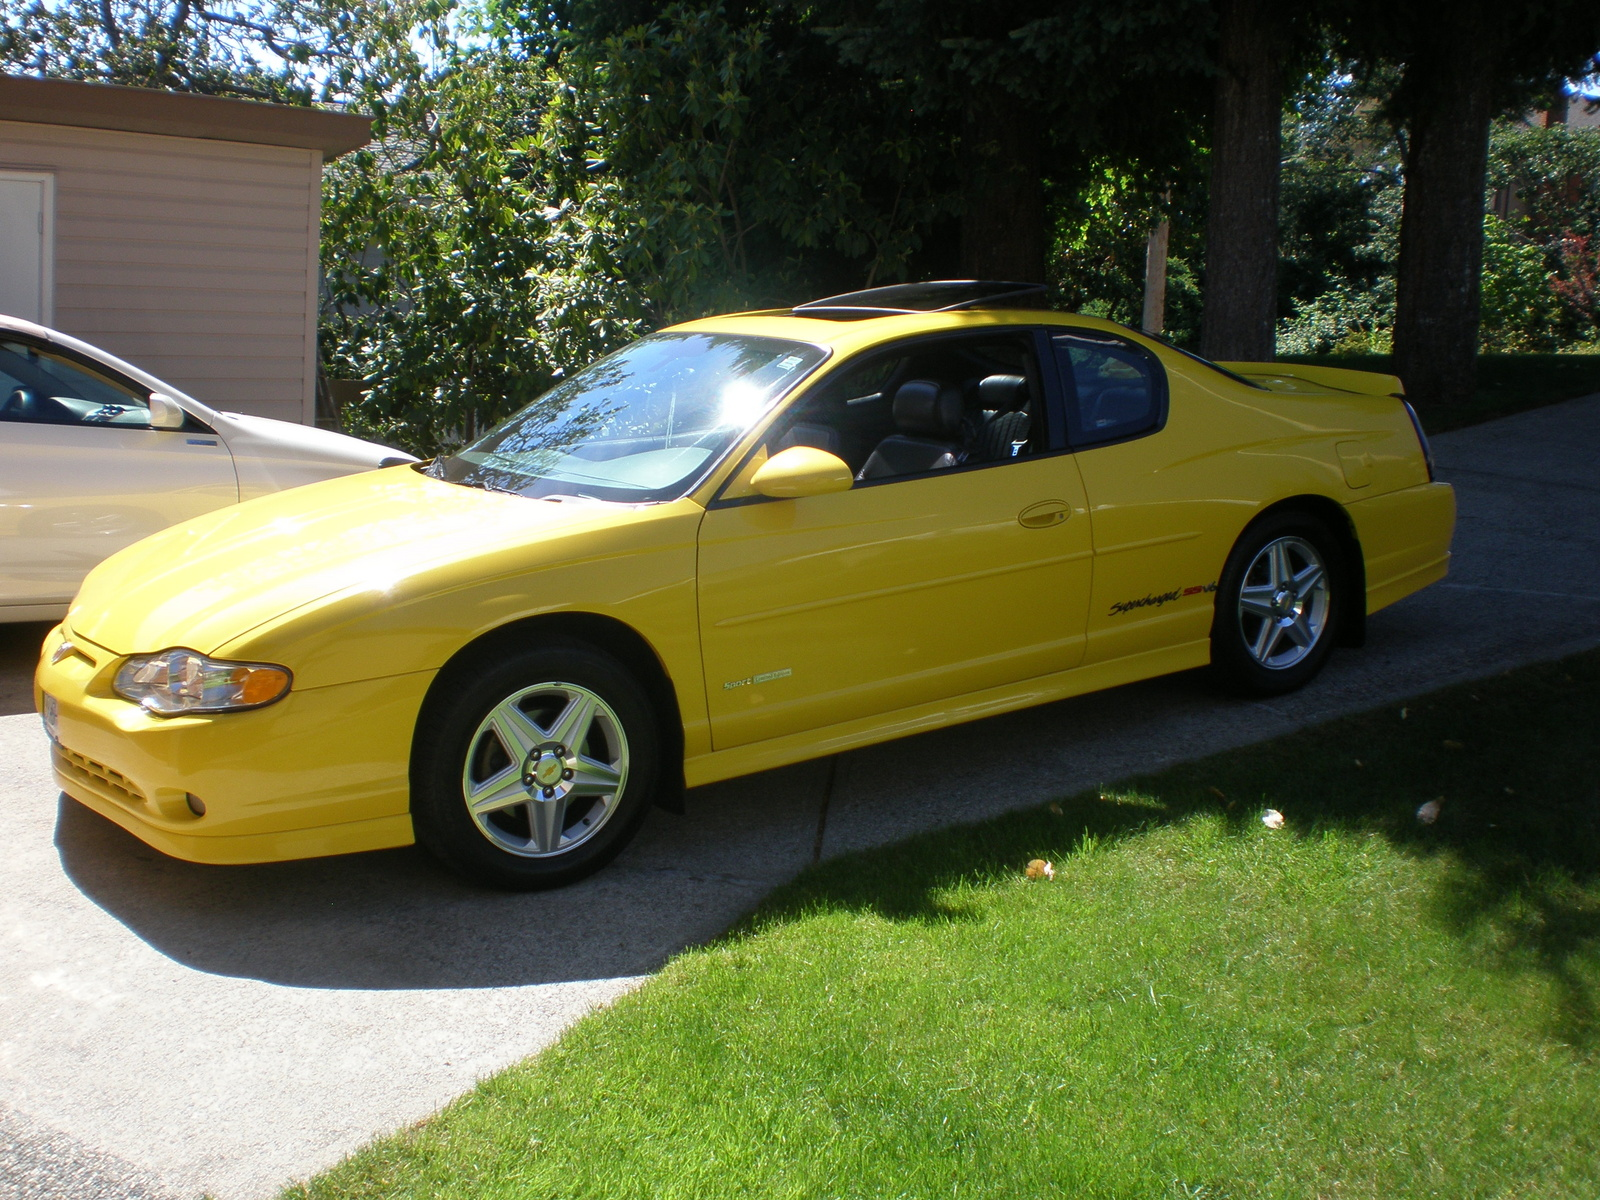 Chevrolet Monte Carlo Ss Supercharged Pic on Yellow 2003 Monte Carlo Ss